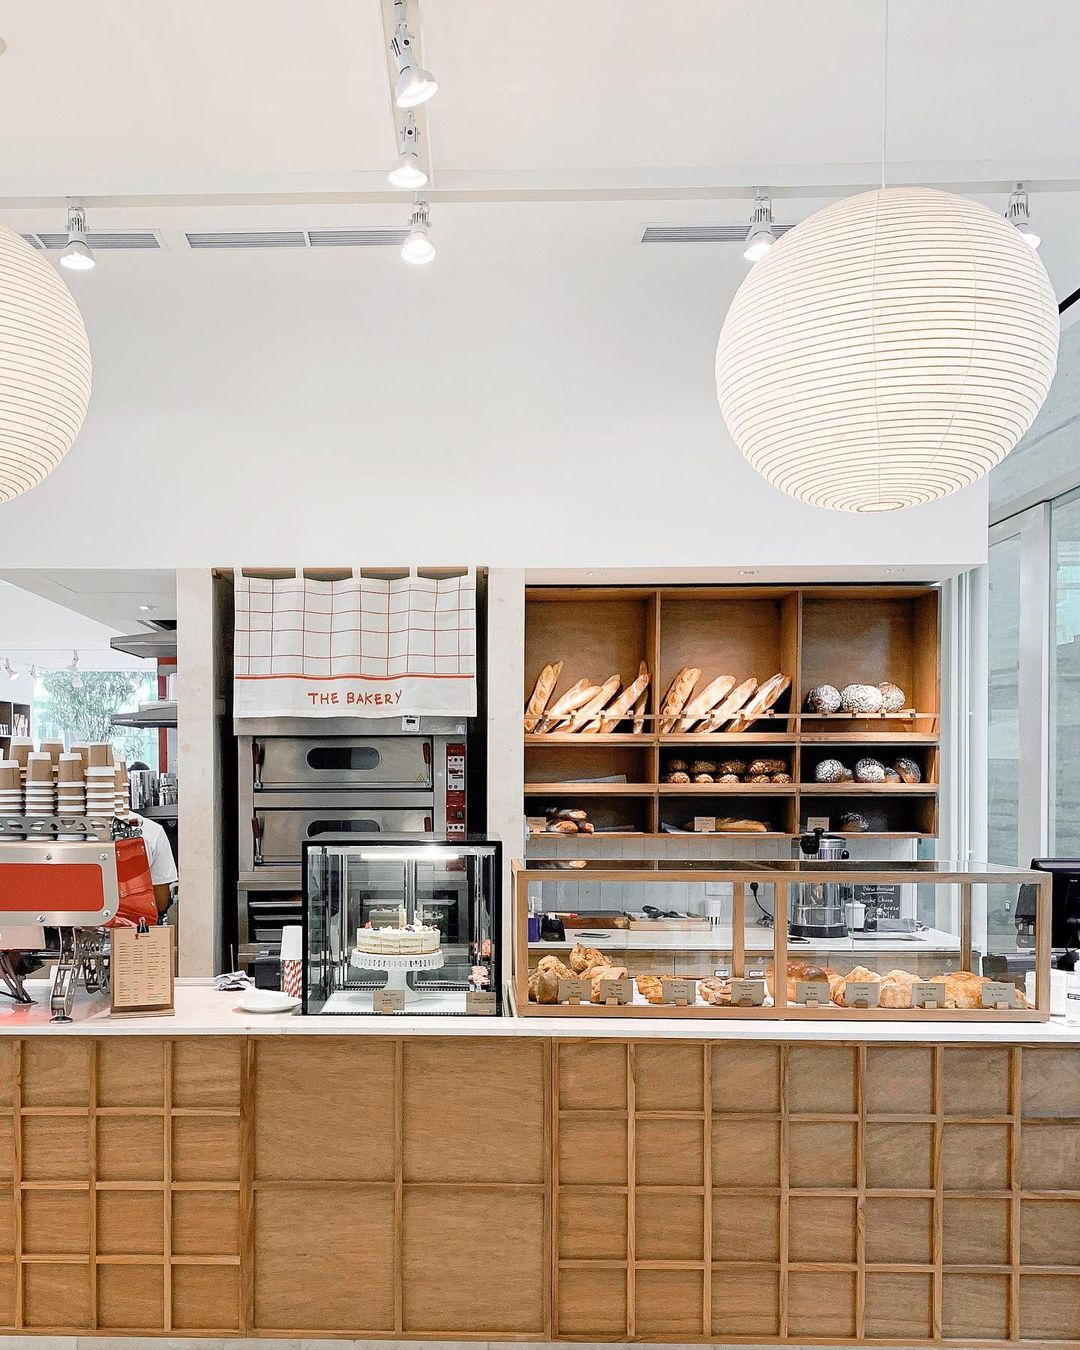 concept stores in jakarta - papilion bakery counter